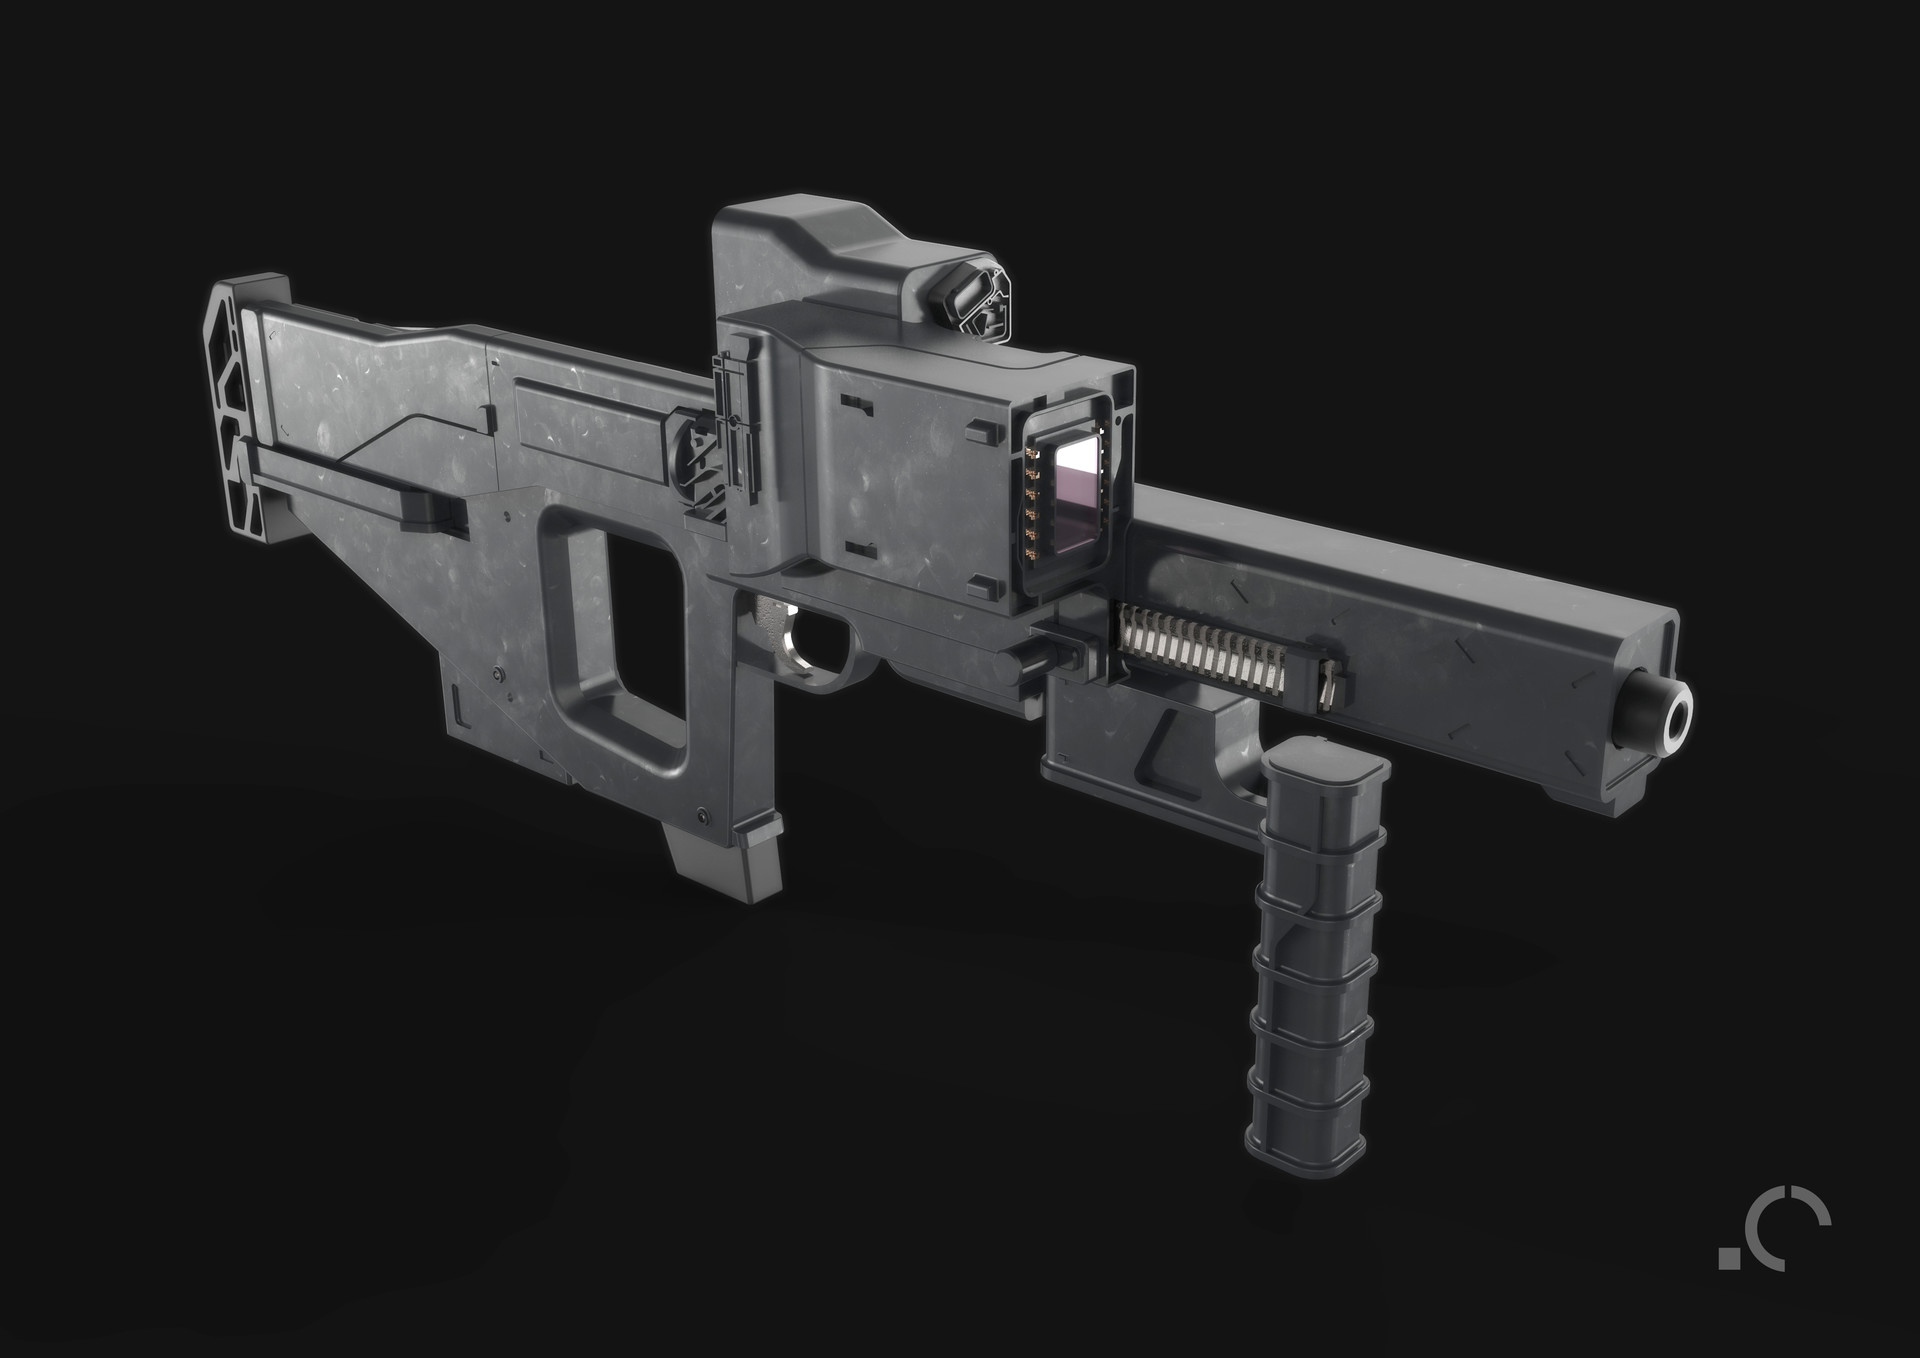 Chen liang concept weapon 02